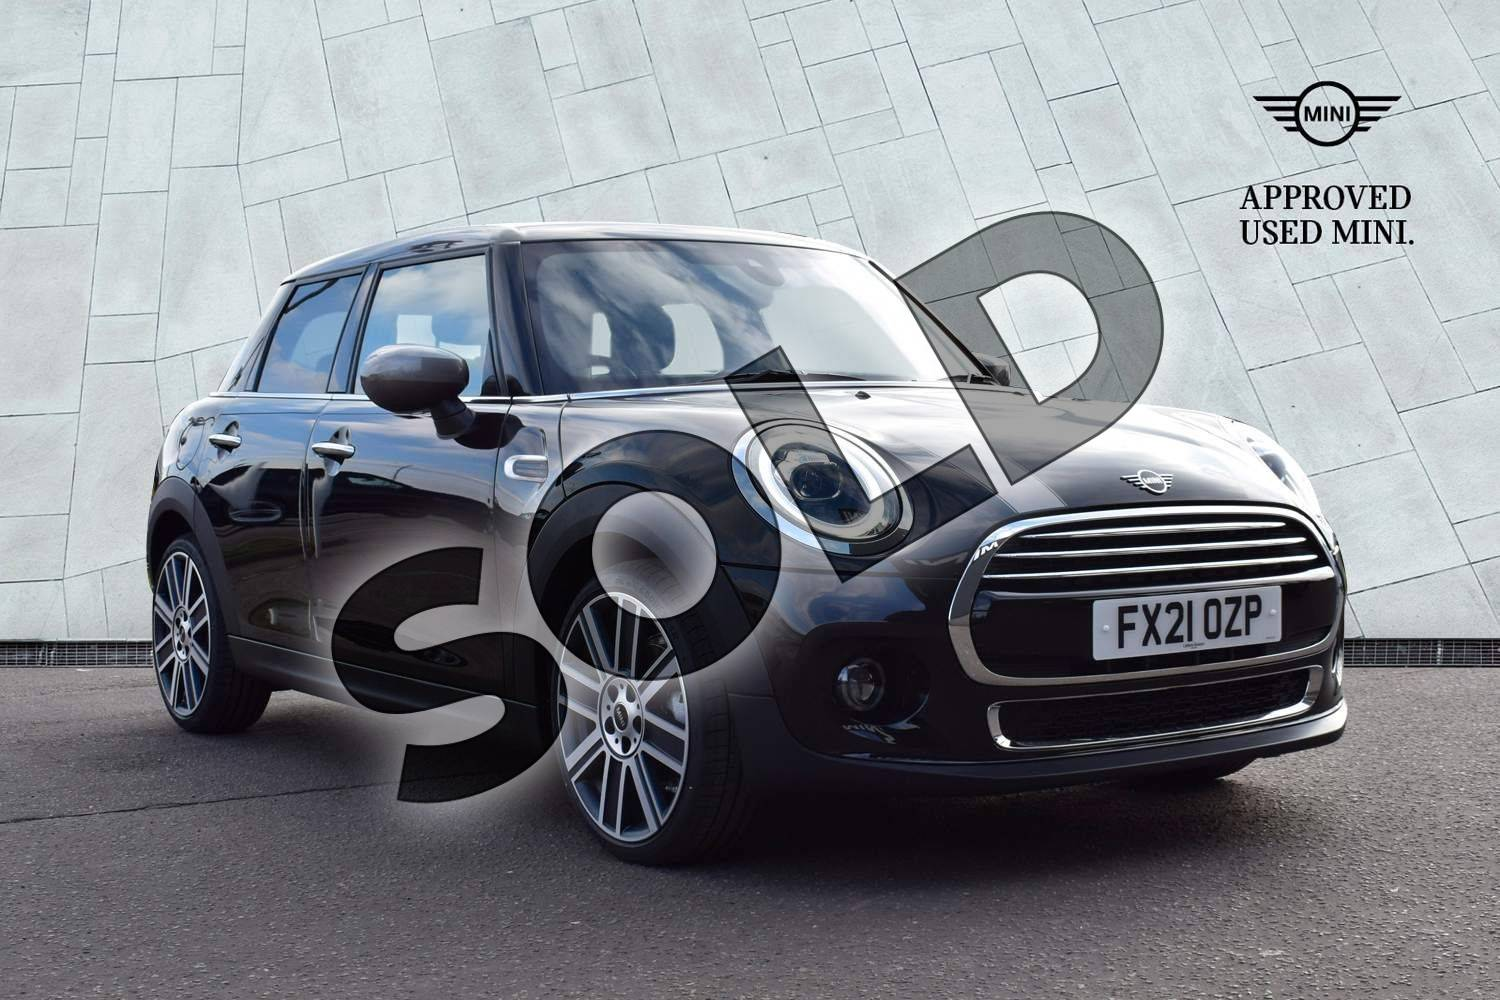 2021 MINI Hatchback 1.5 Cooper Exclusive II 5dr in Midnight Black at Listers Boston (MINI)